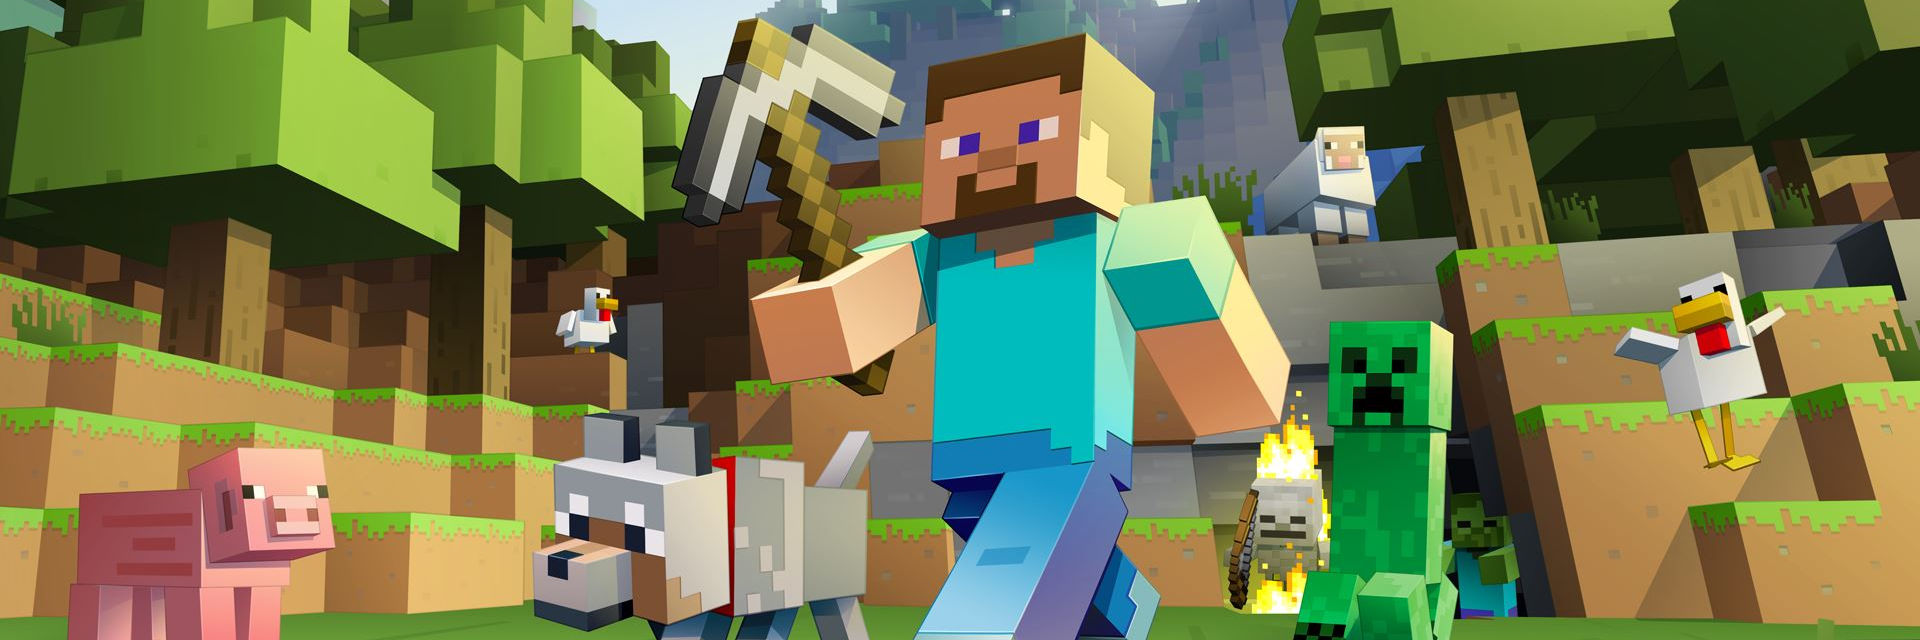 Minecraft Image, character with pickaxe surrounded by happy animals.